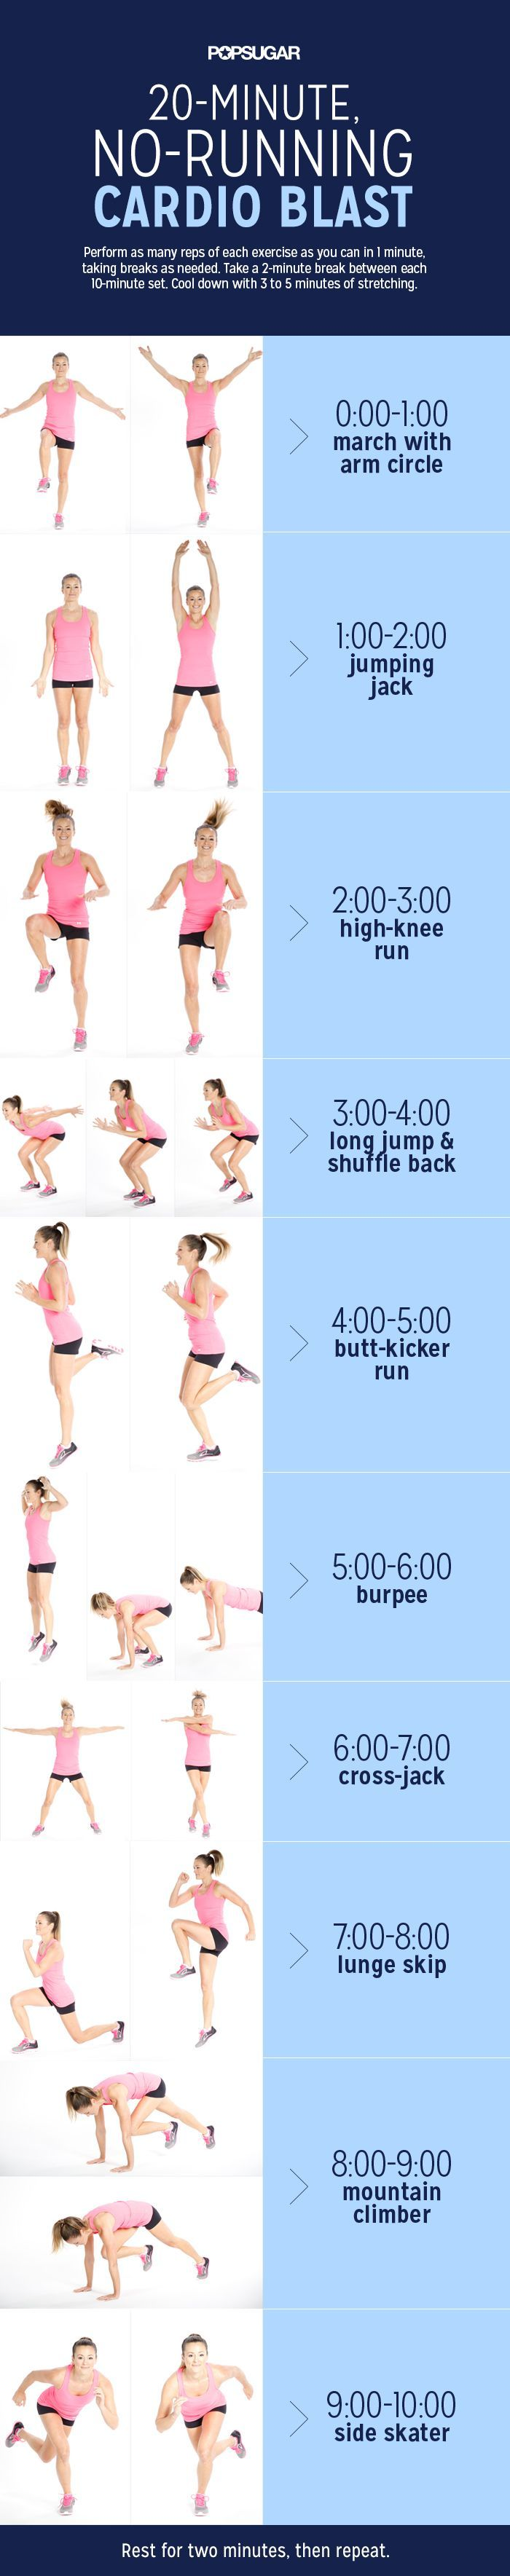 Take 20-minutes out of your day to complete this cardio workout.